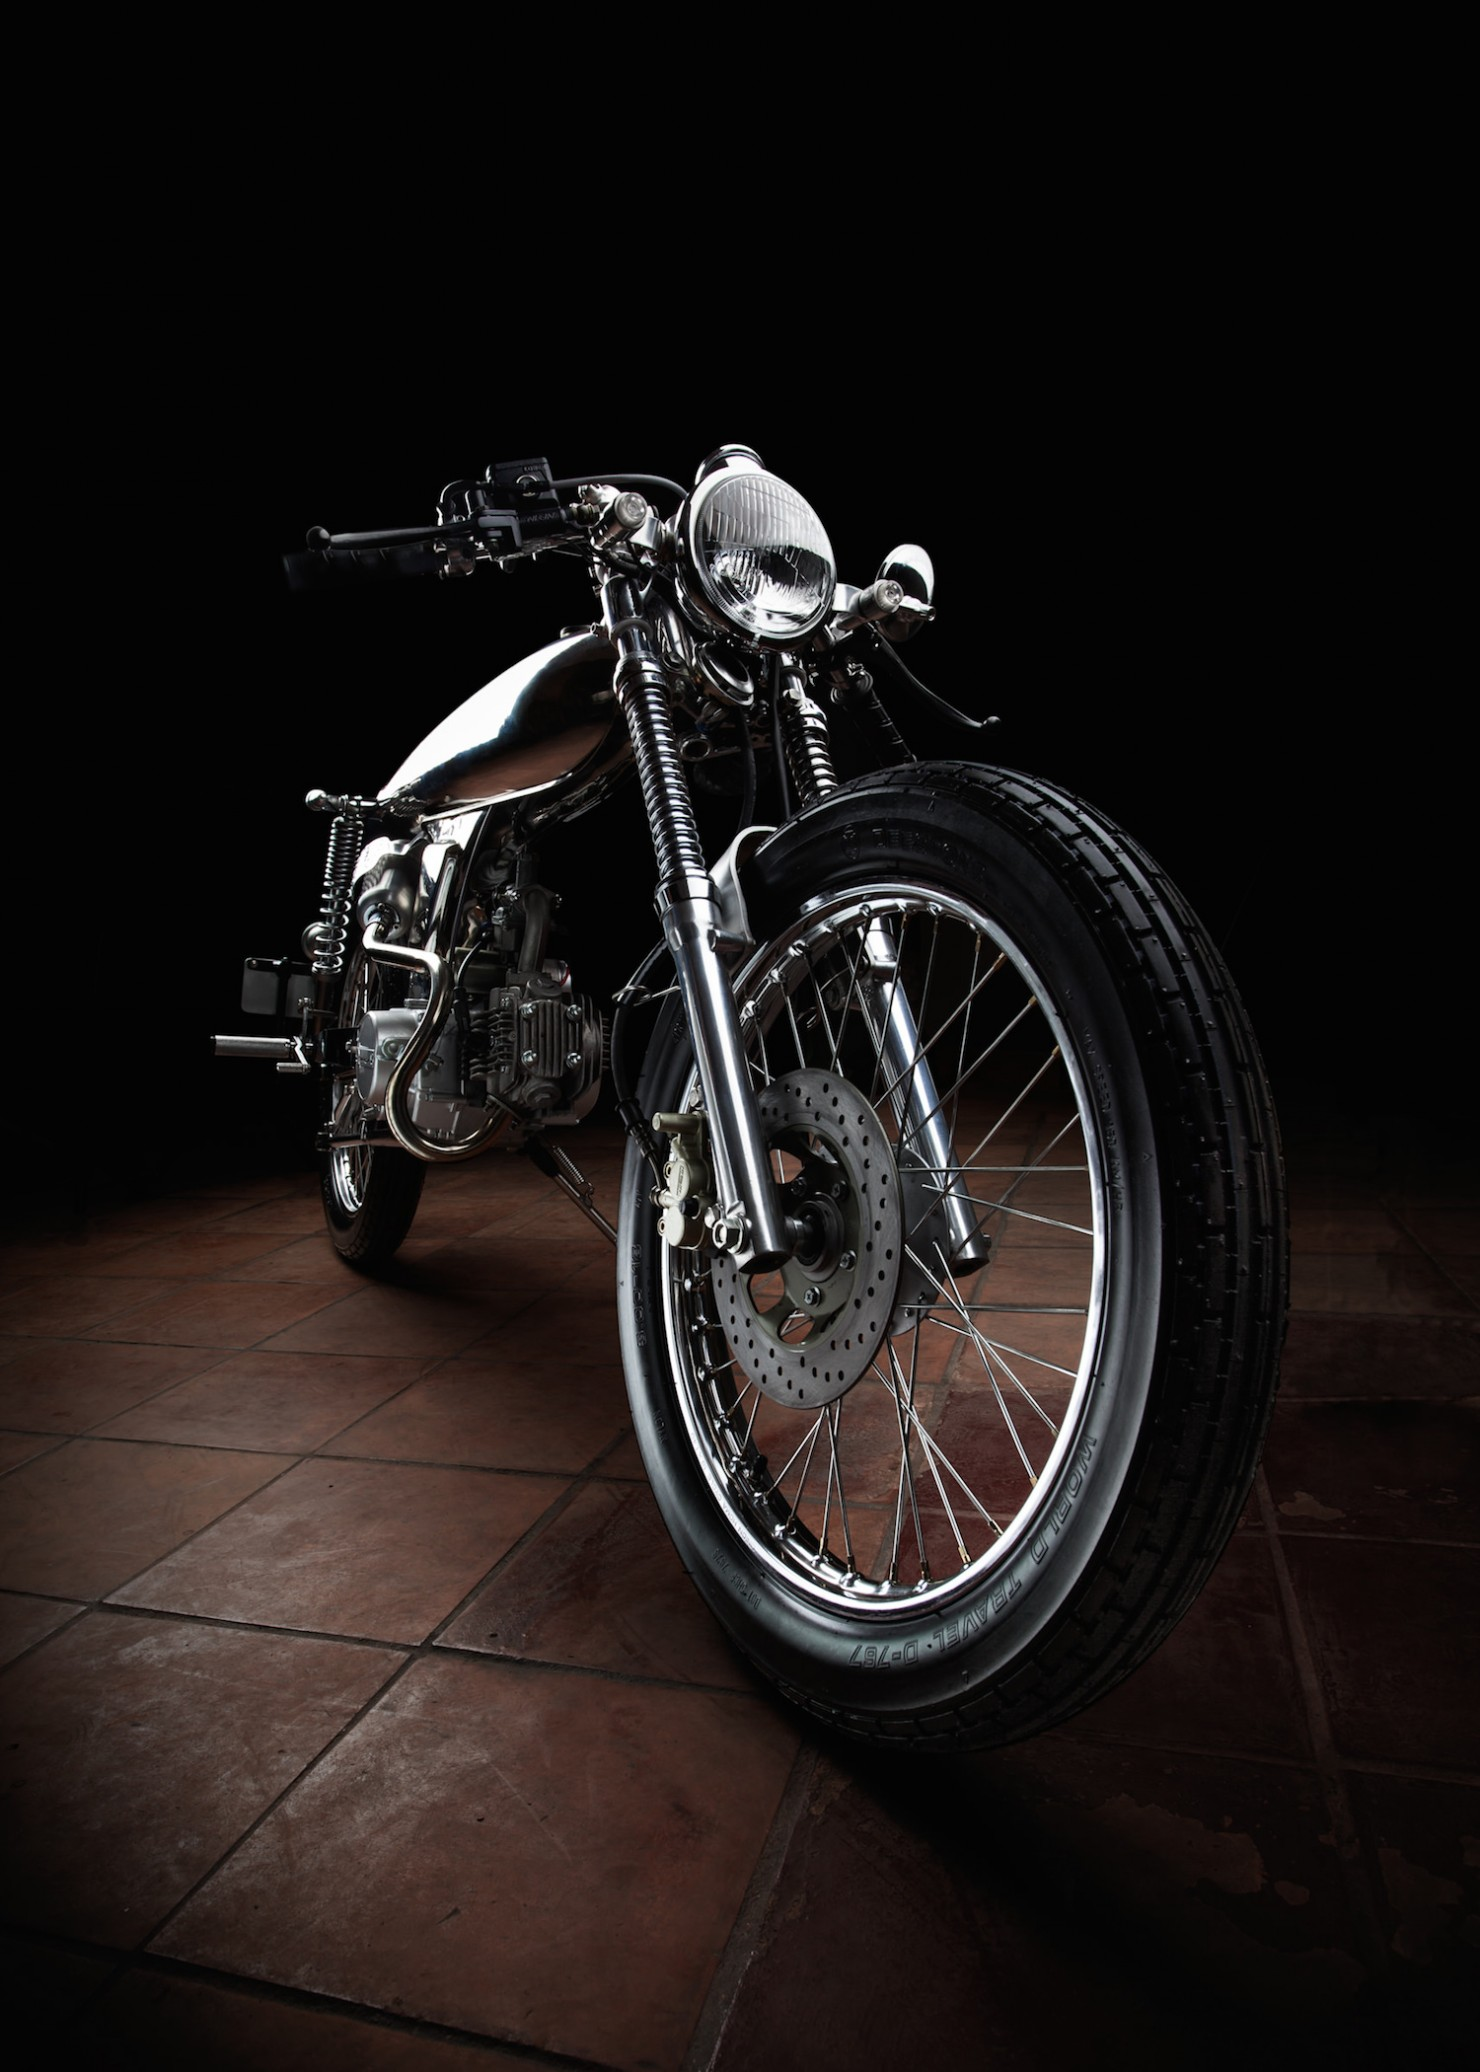 A Sub-500cc Motorcycle With Steam